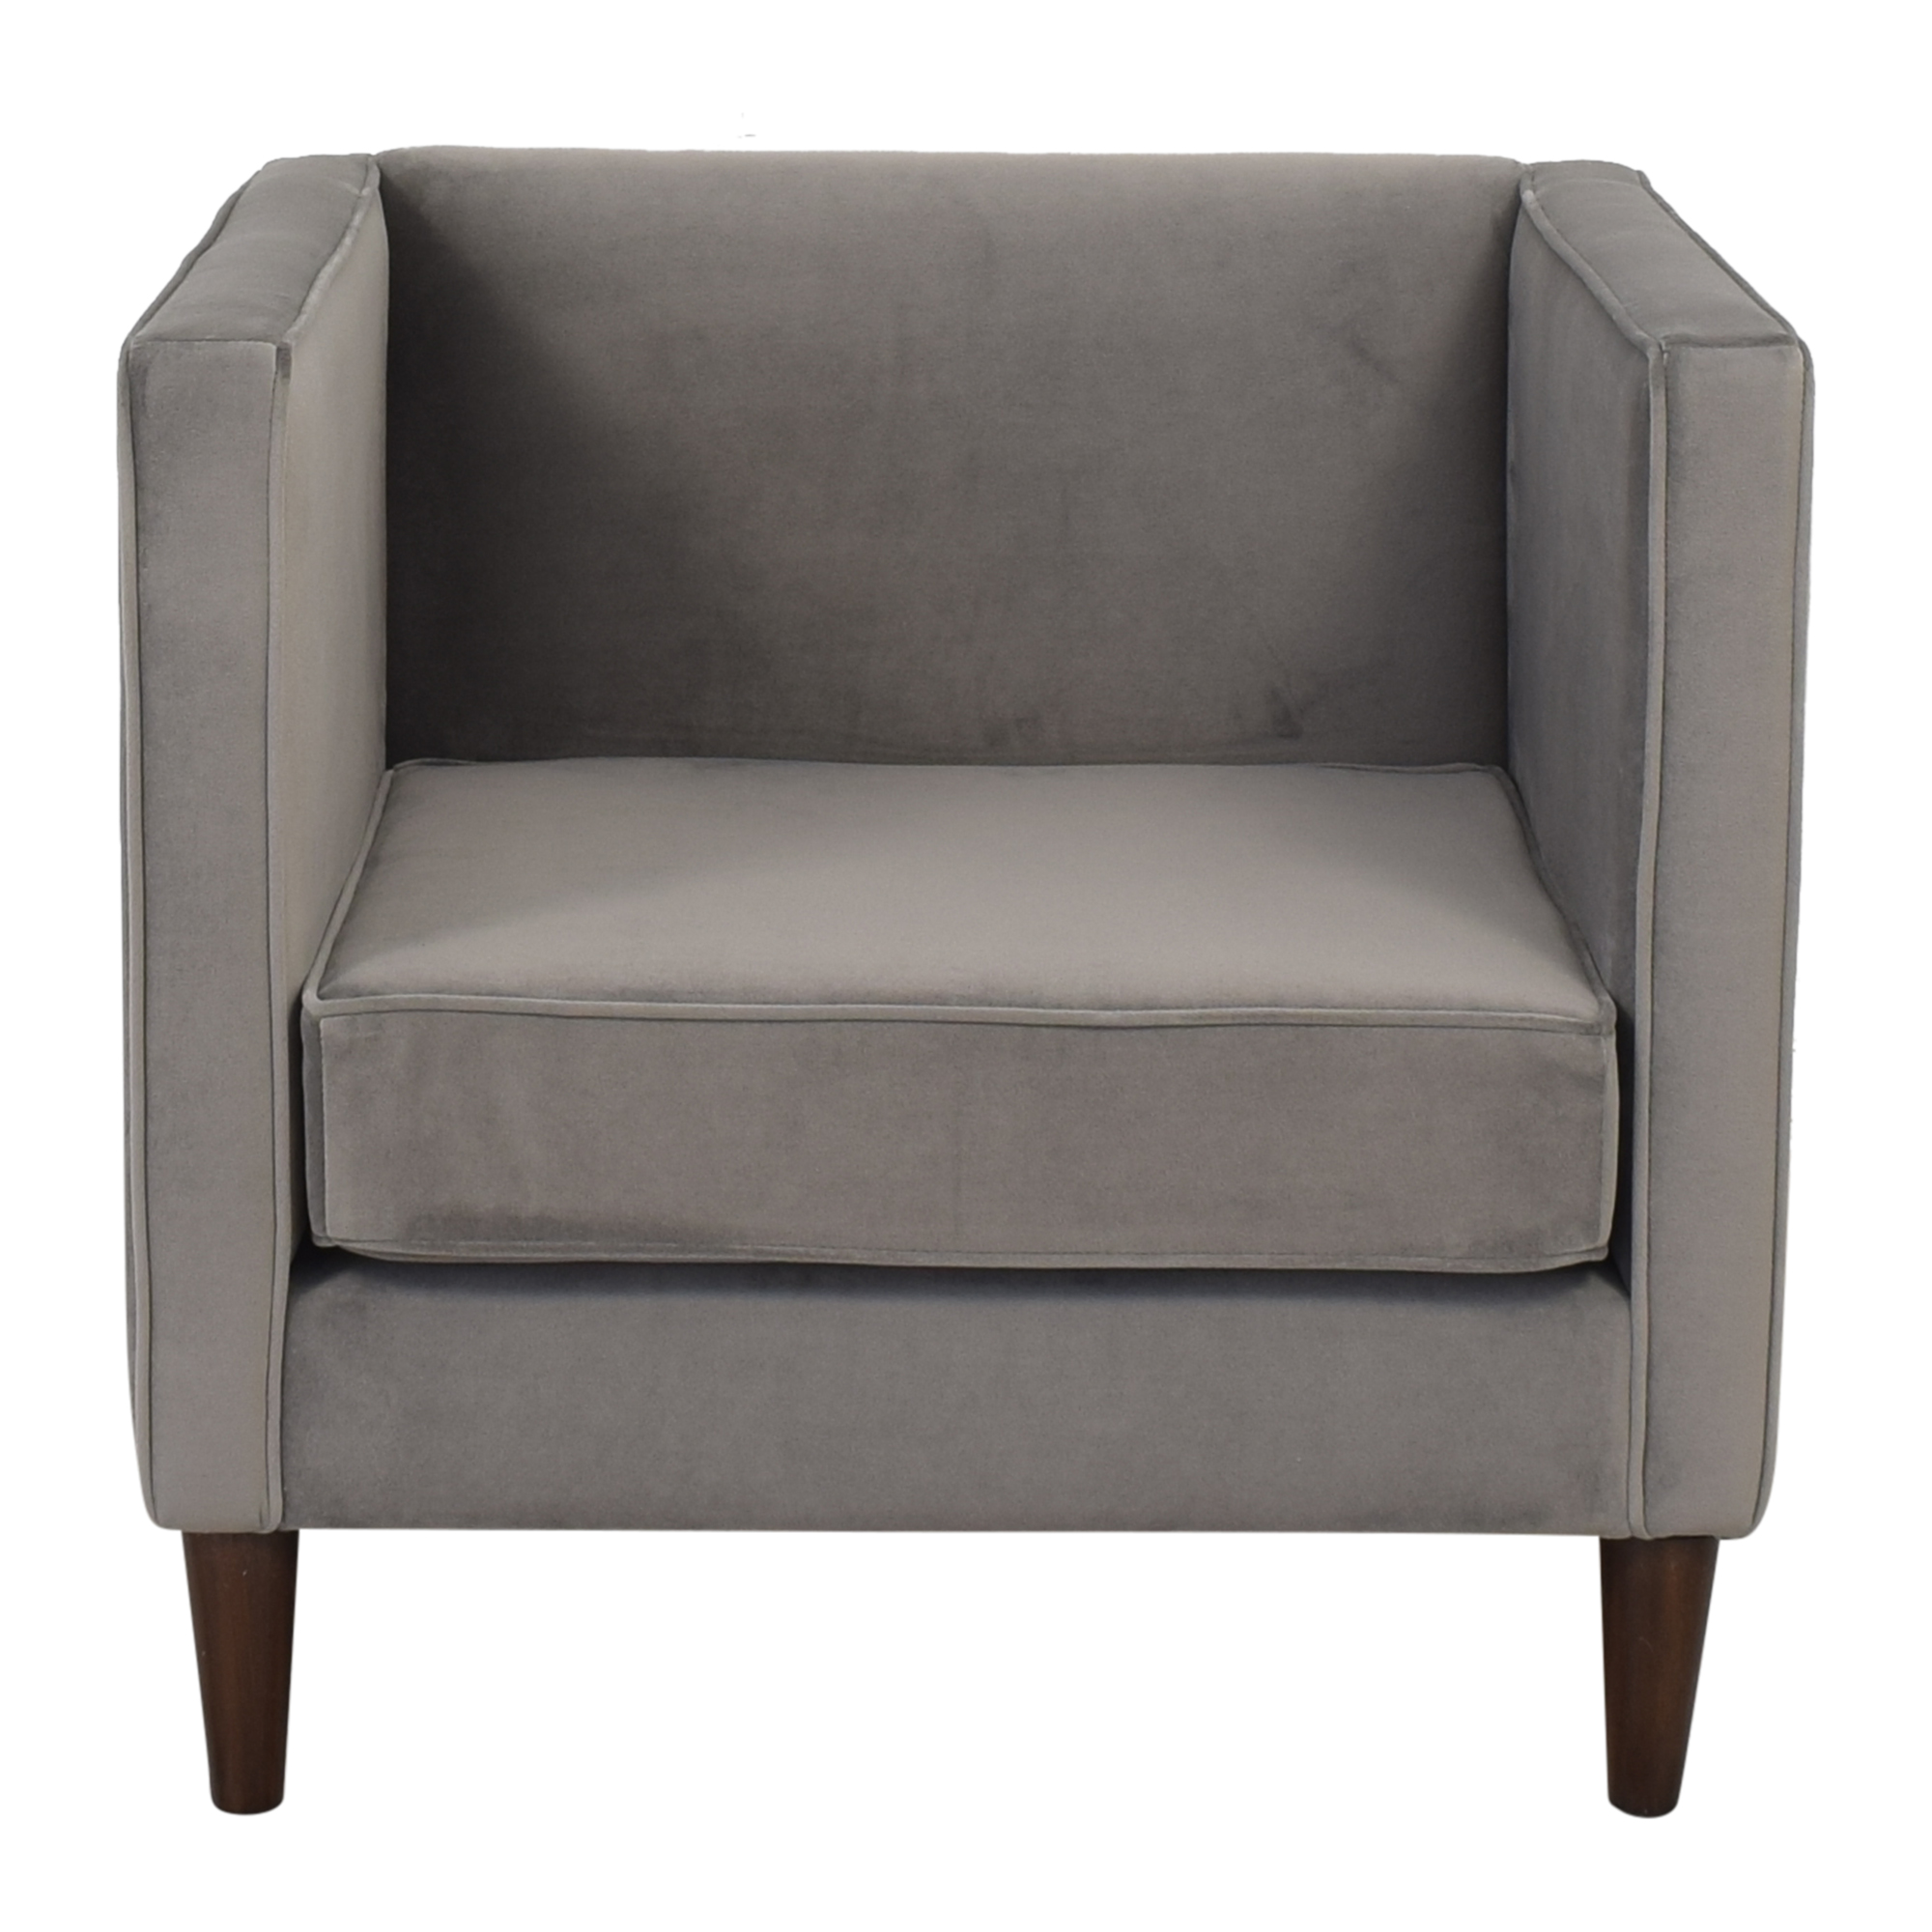 The Inside The Inside Tuxedo Chair coupon